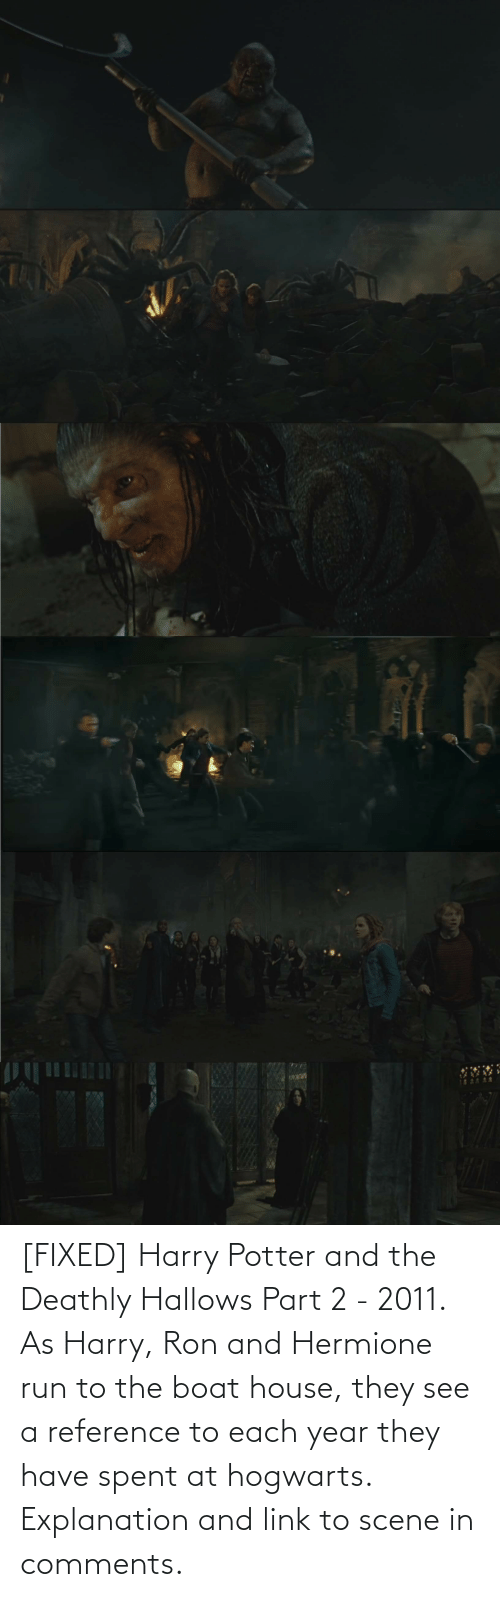 Harry Potter: [FIXED] Harry Potter and the Deathly Hallows Part 2 - 2011. As Harry, Ron and Hermione run to the boat house, they see a reference to each year they have spent at hogwarts. Explanation and link to scene in comments.